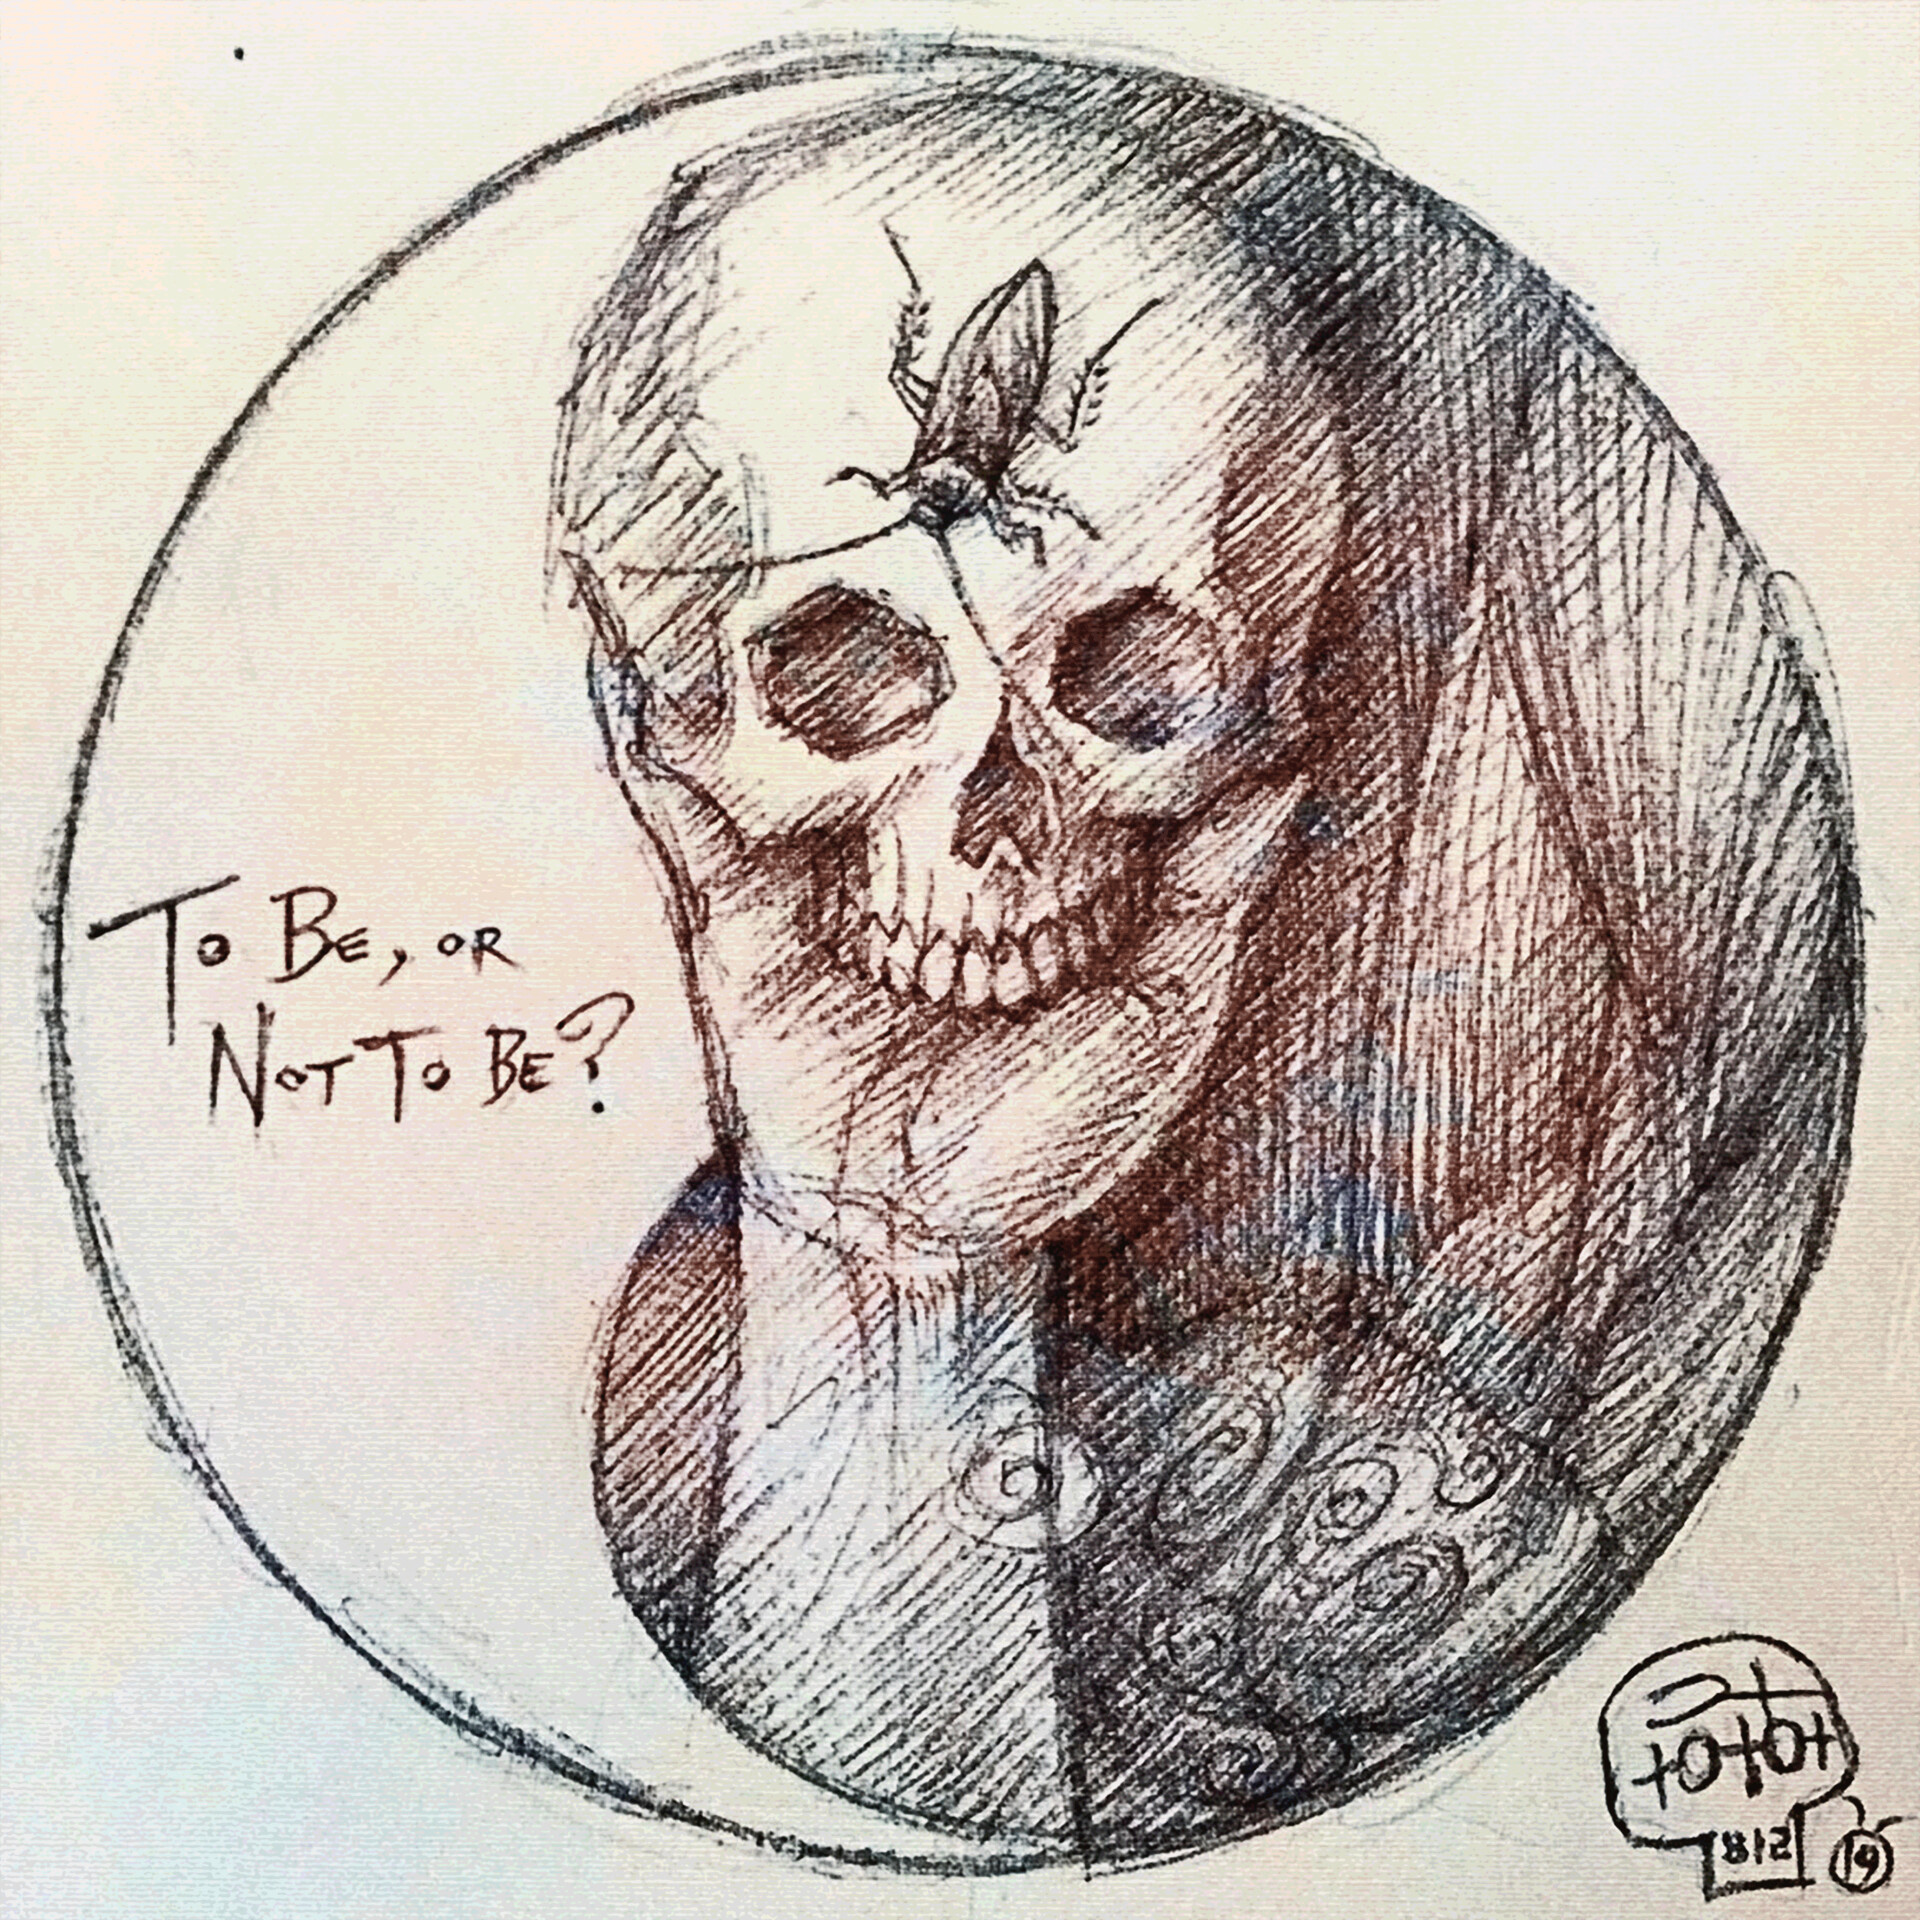 To be or Not to Be - Sketch